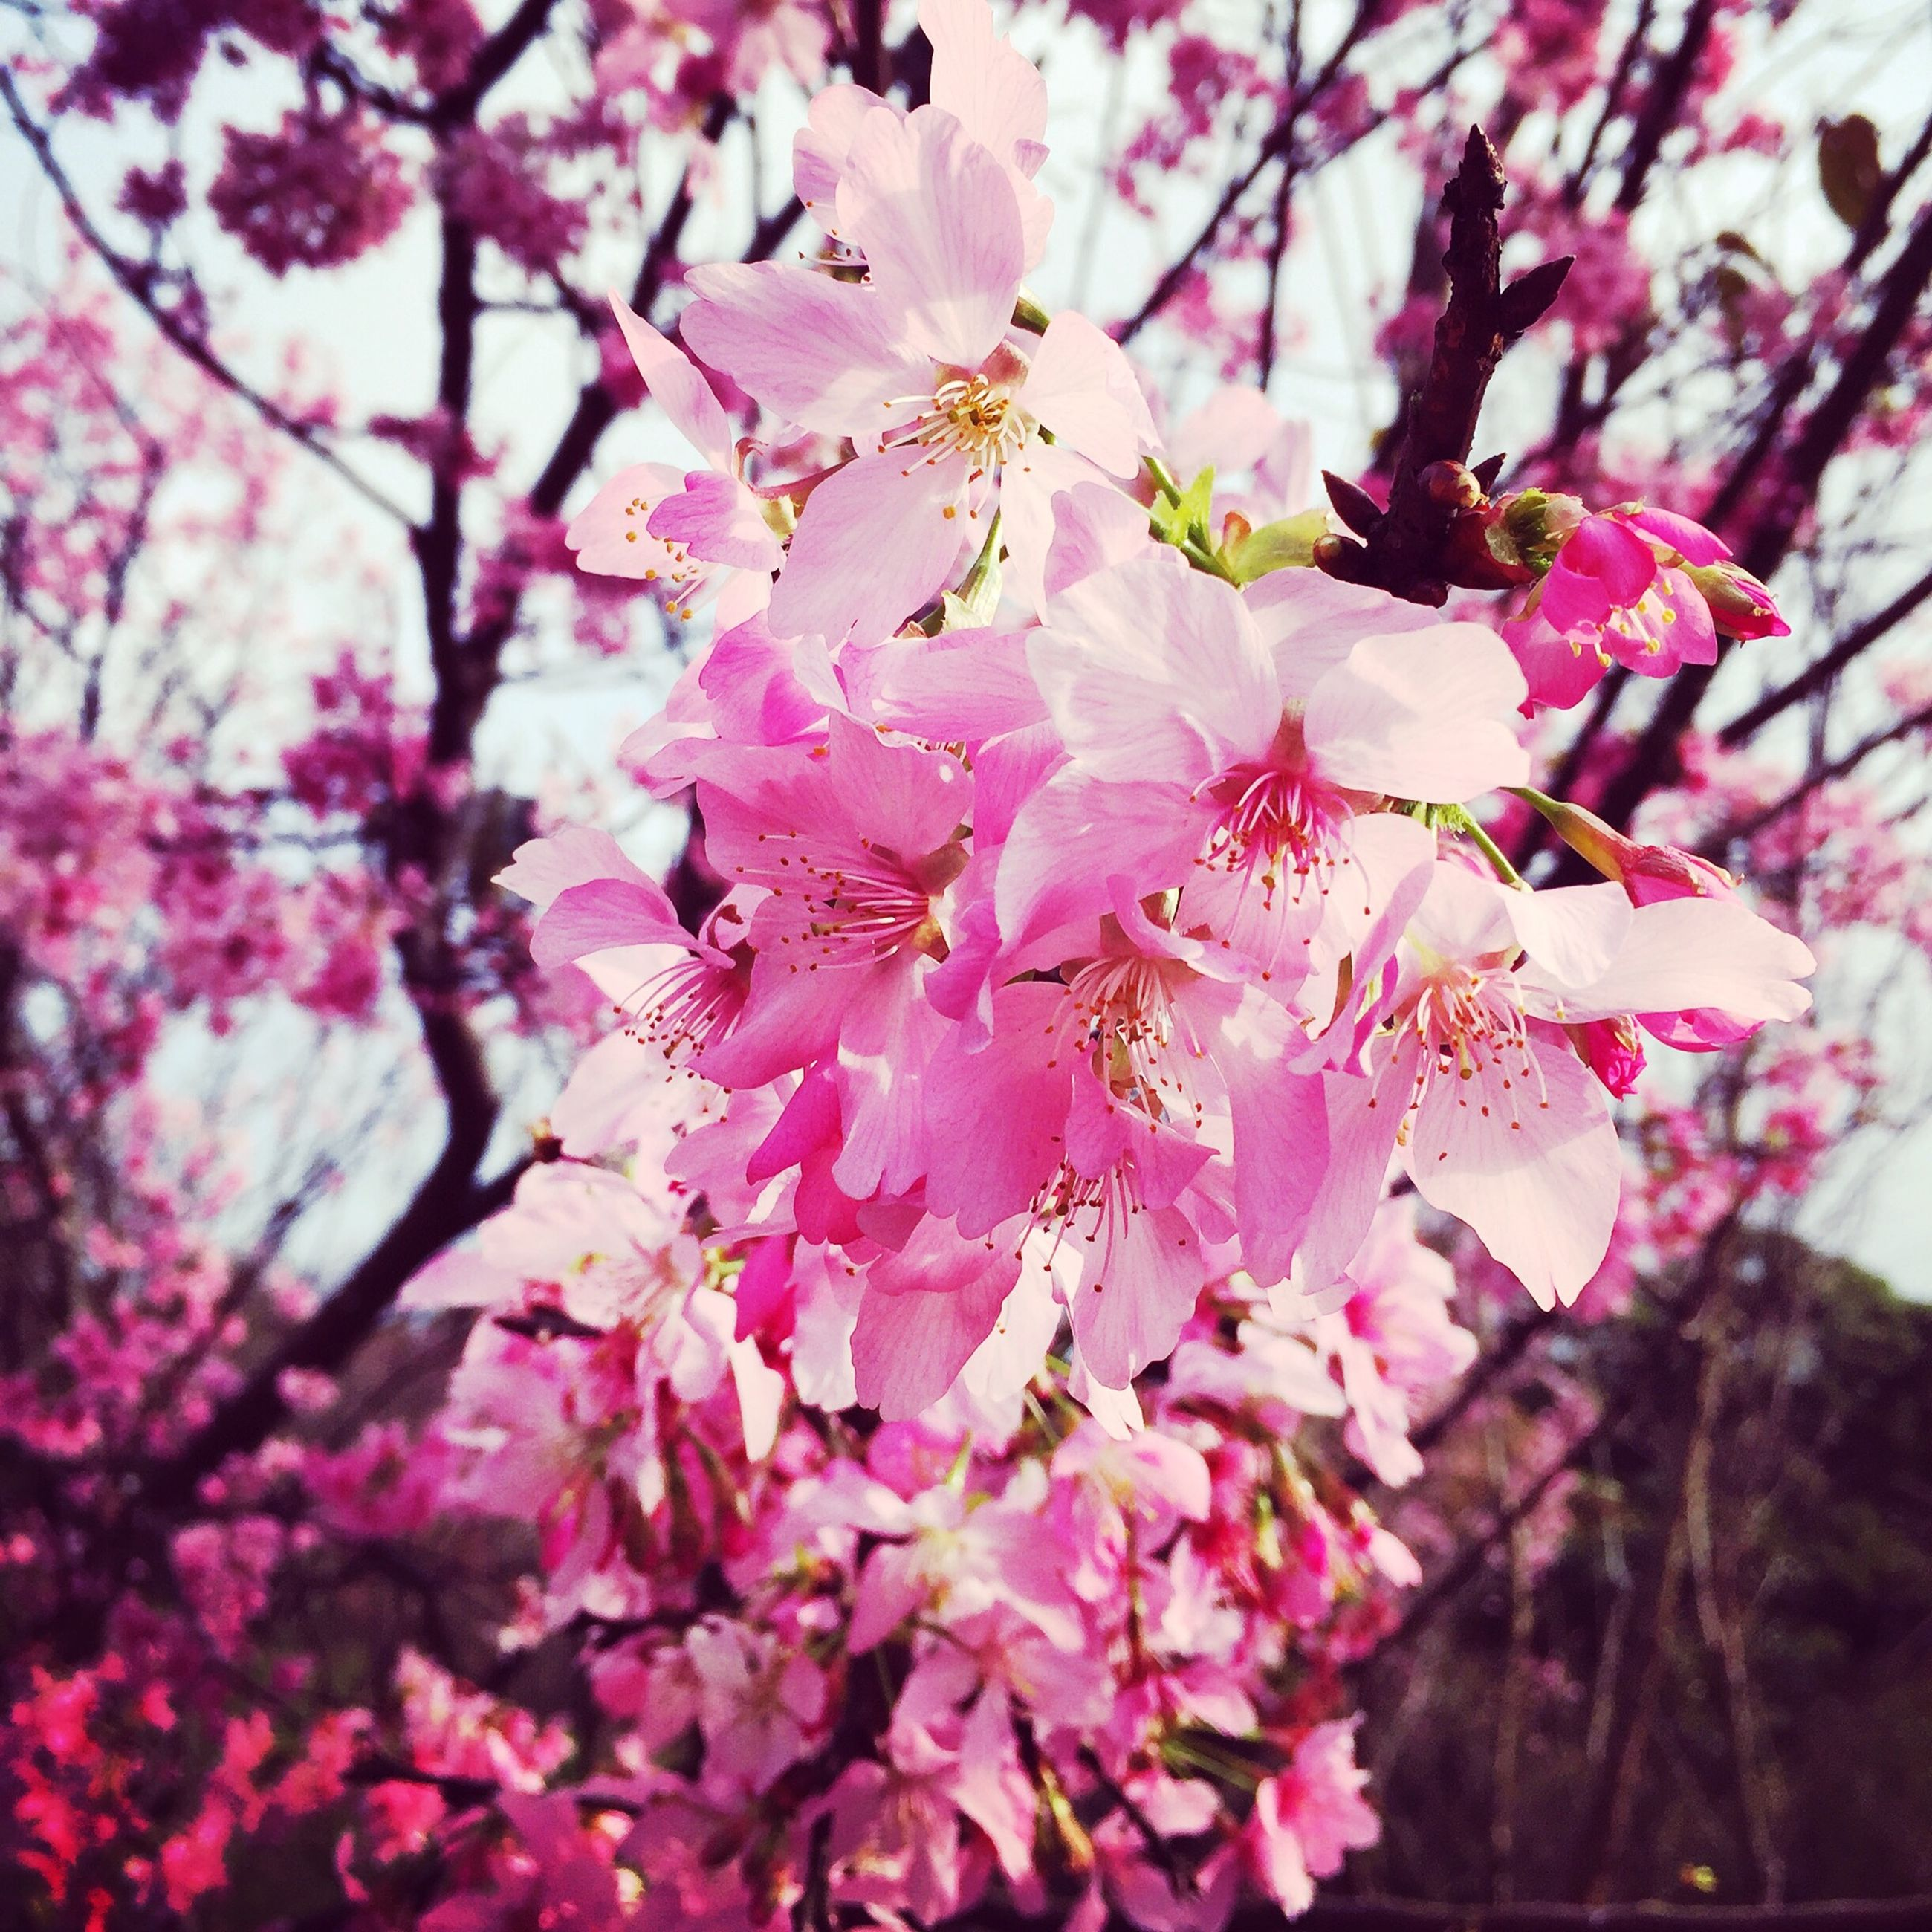 flower, freshness, pink color, growth, fragility, branch, tree, beauty in nature, cherry blossom, nature, blossom, cherry tree, petal, blooming, in bloom, focus on foreground, close-up, springtime, low angle view, pink